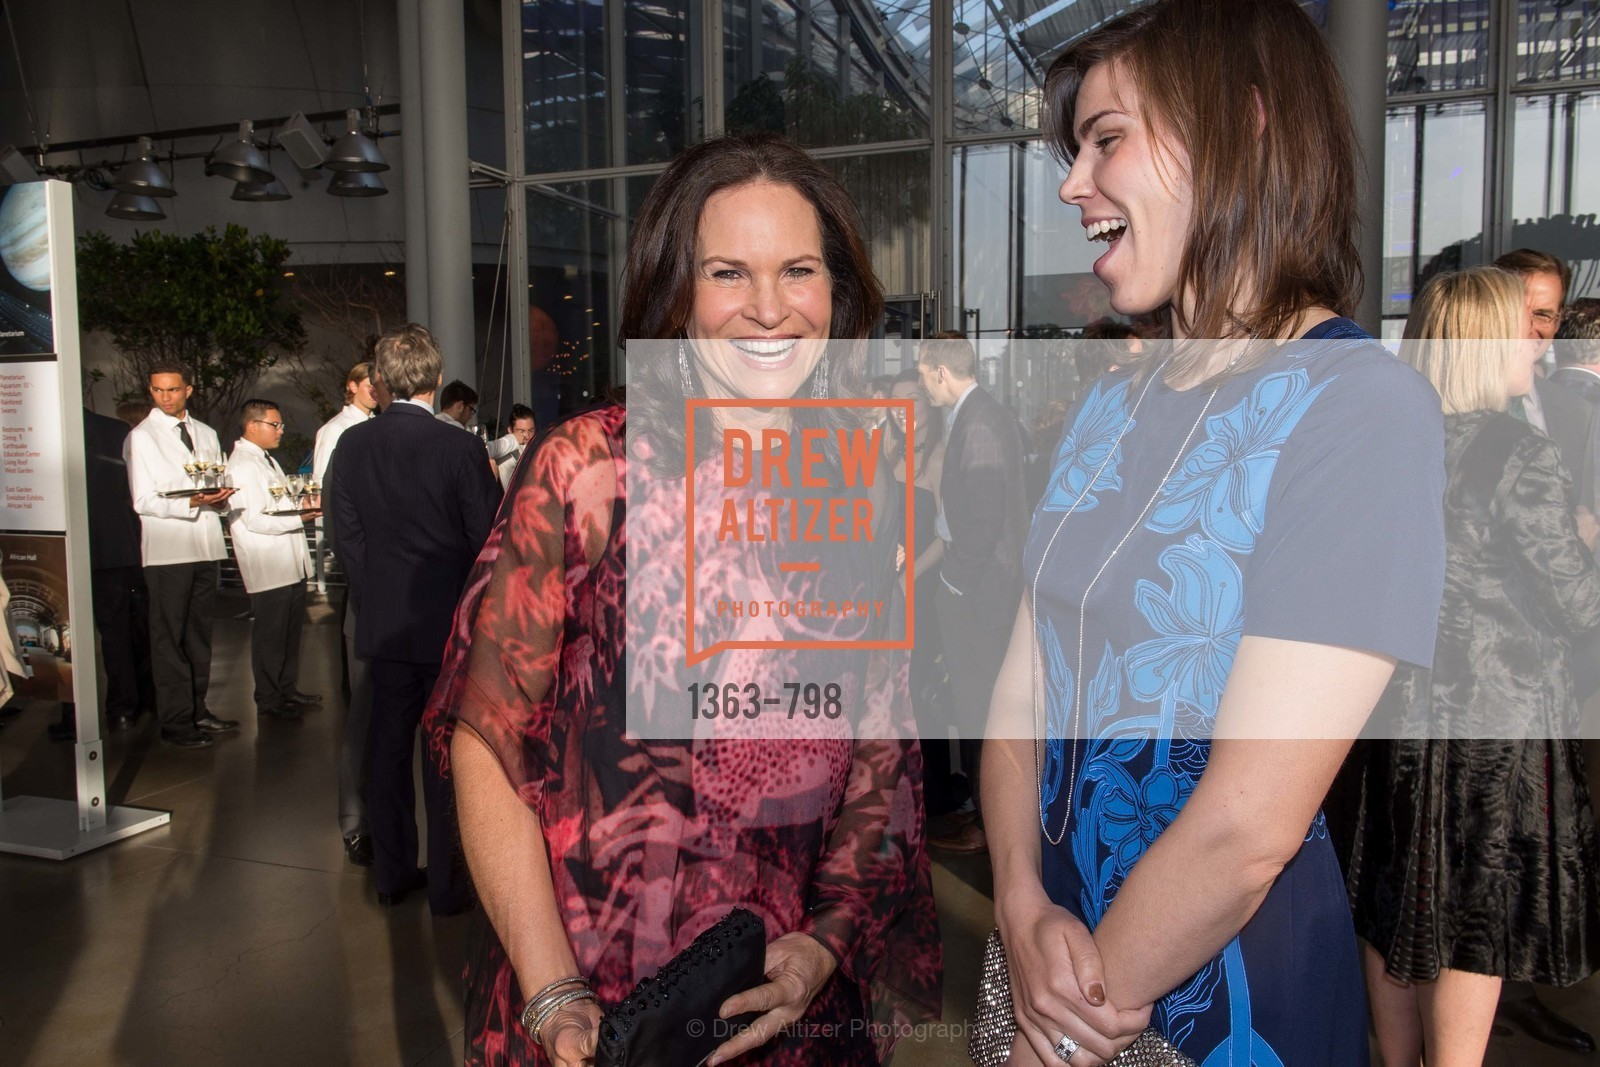 Randi Fisher, Nicole Schuetz, CALIFORNIA ACADEMY OF SCIENCES - Big Bang Gala 2015, US, April 23rd, 2015,Drew Altizer, Drew Altizer Photography, full-service agency, private events, San Francisco photographer, photographer california